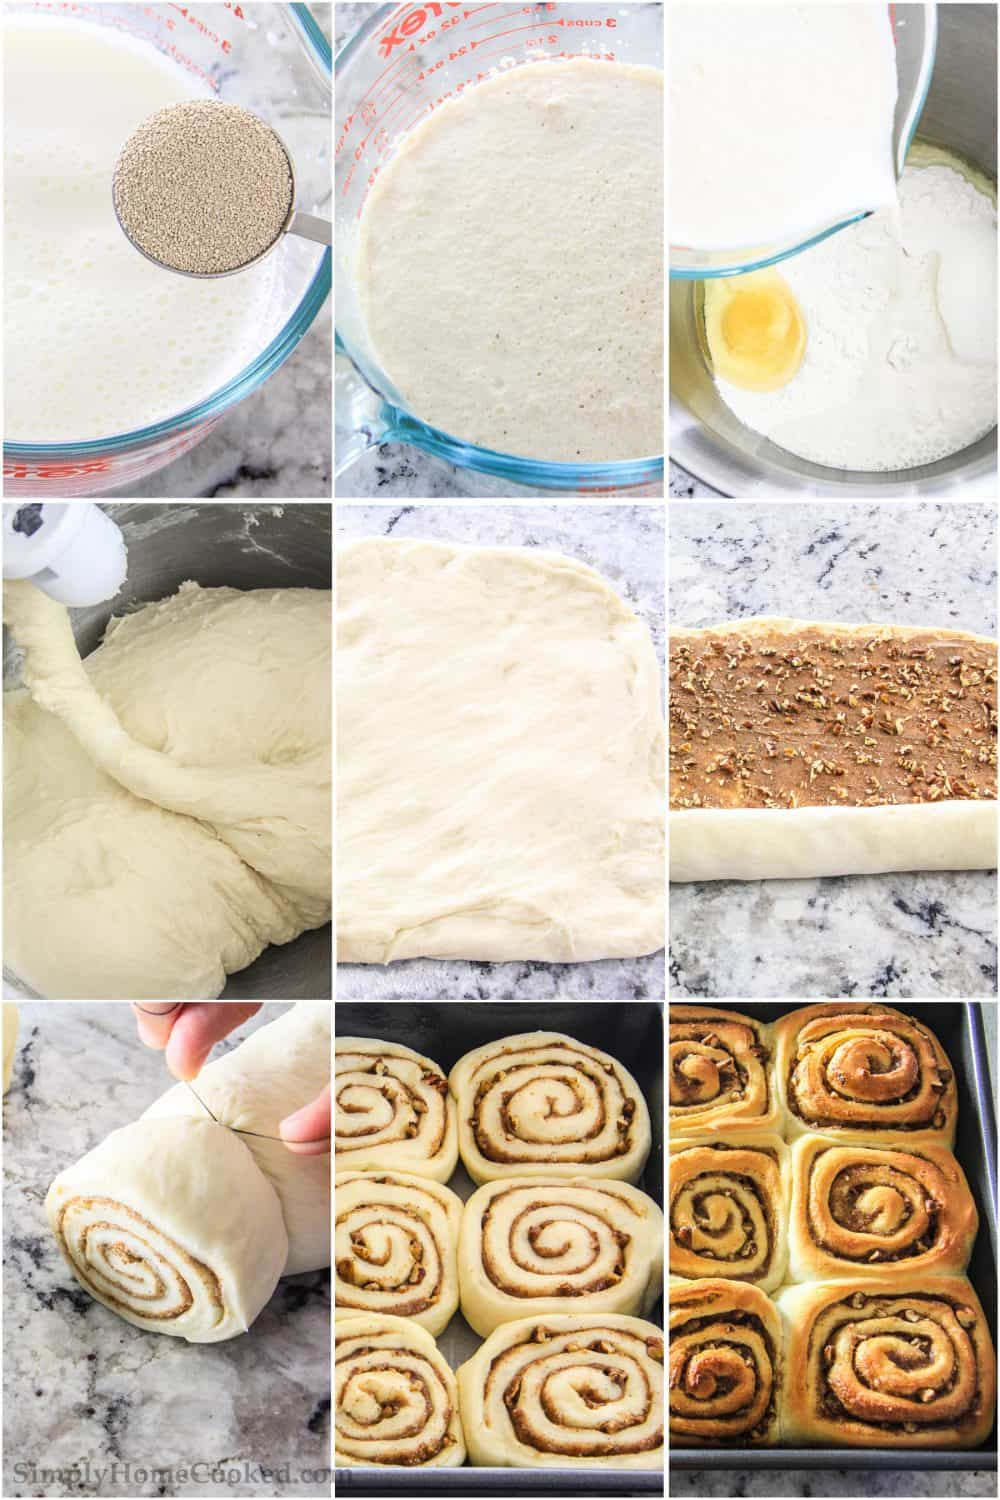 9 picture collage of the steps to make homemade cinnamon rolls from scratch